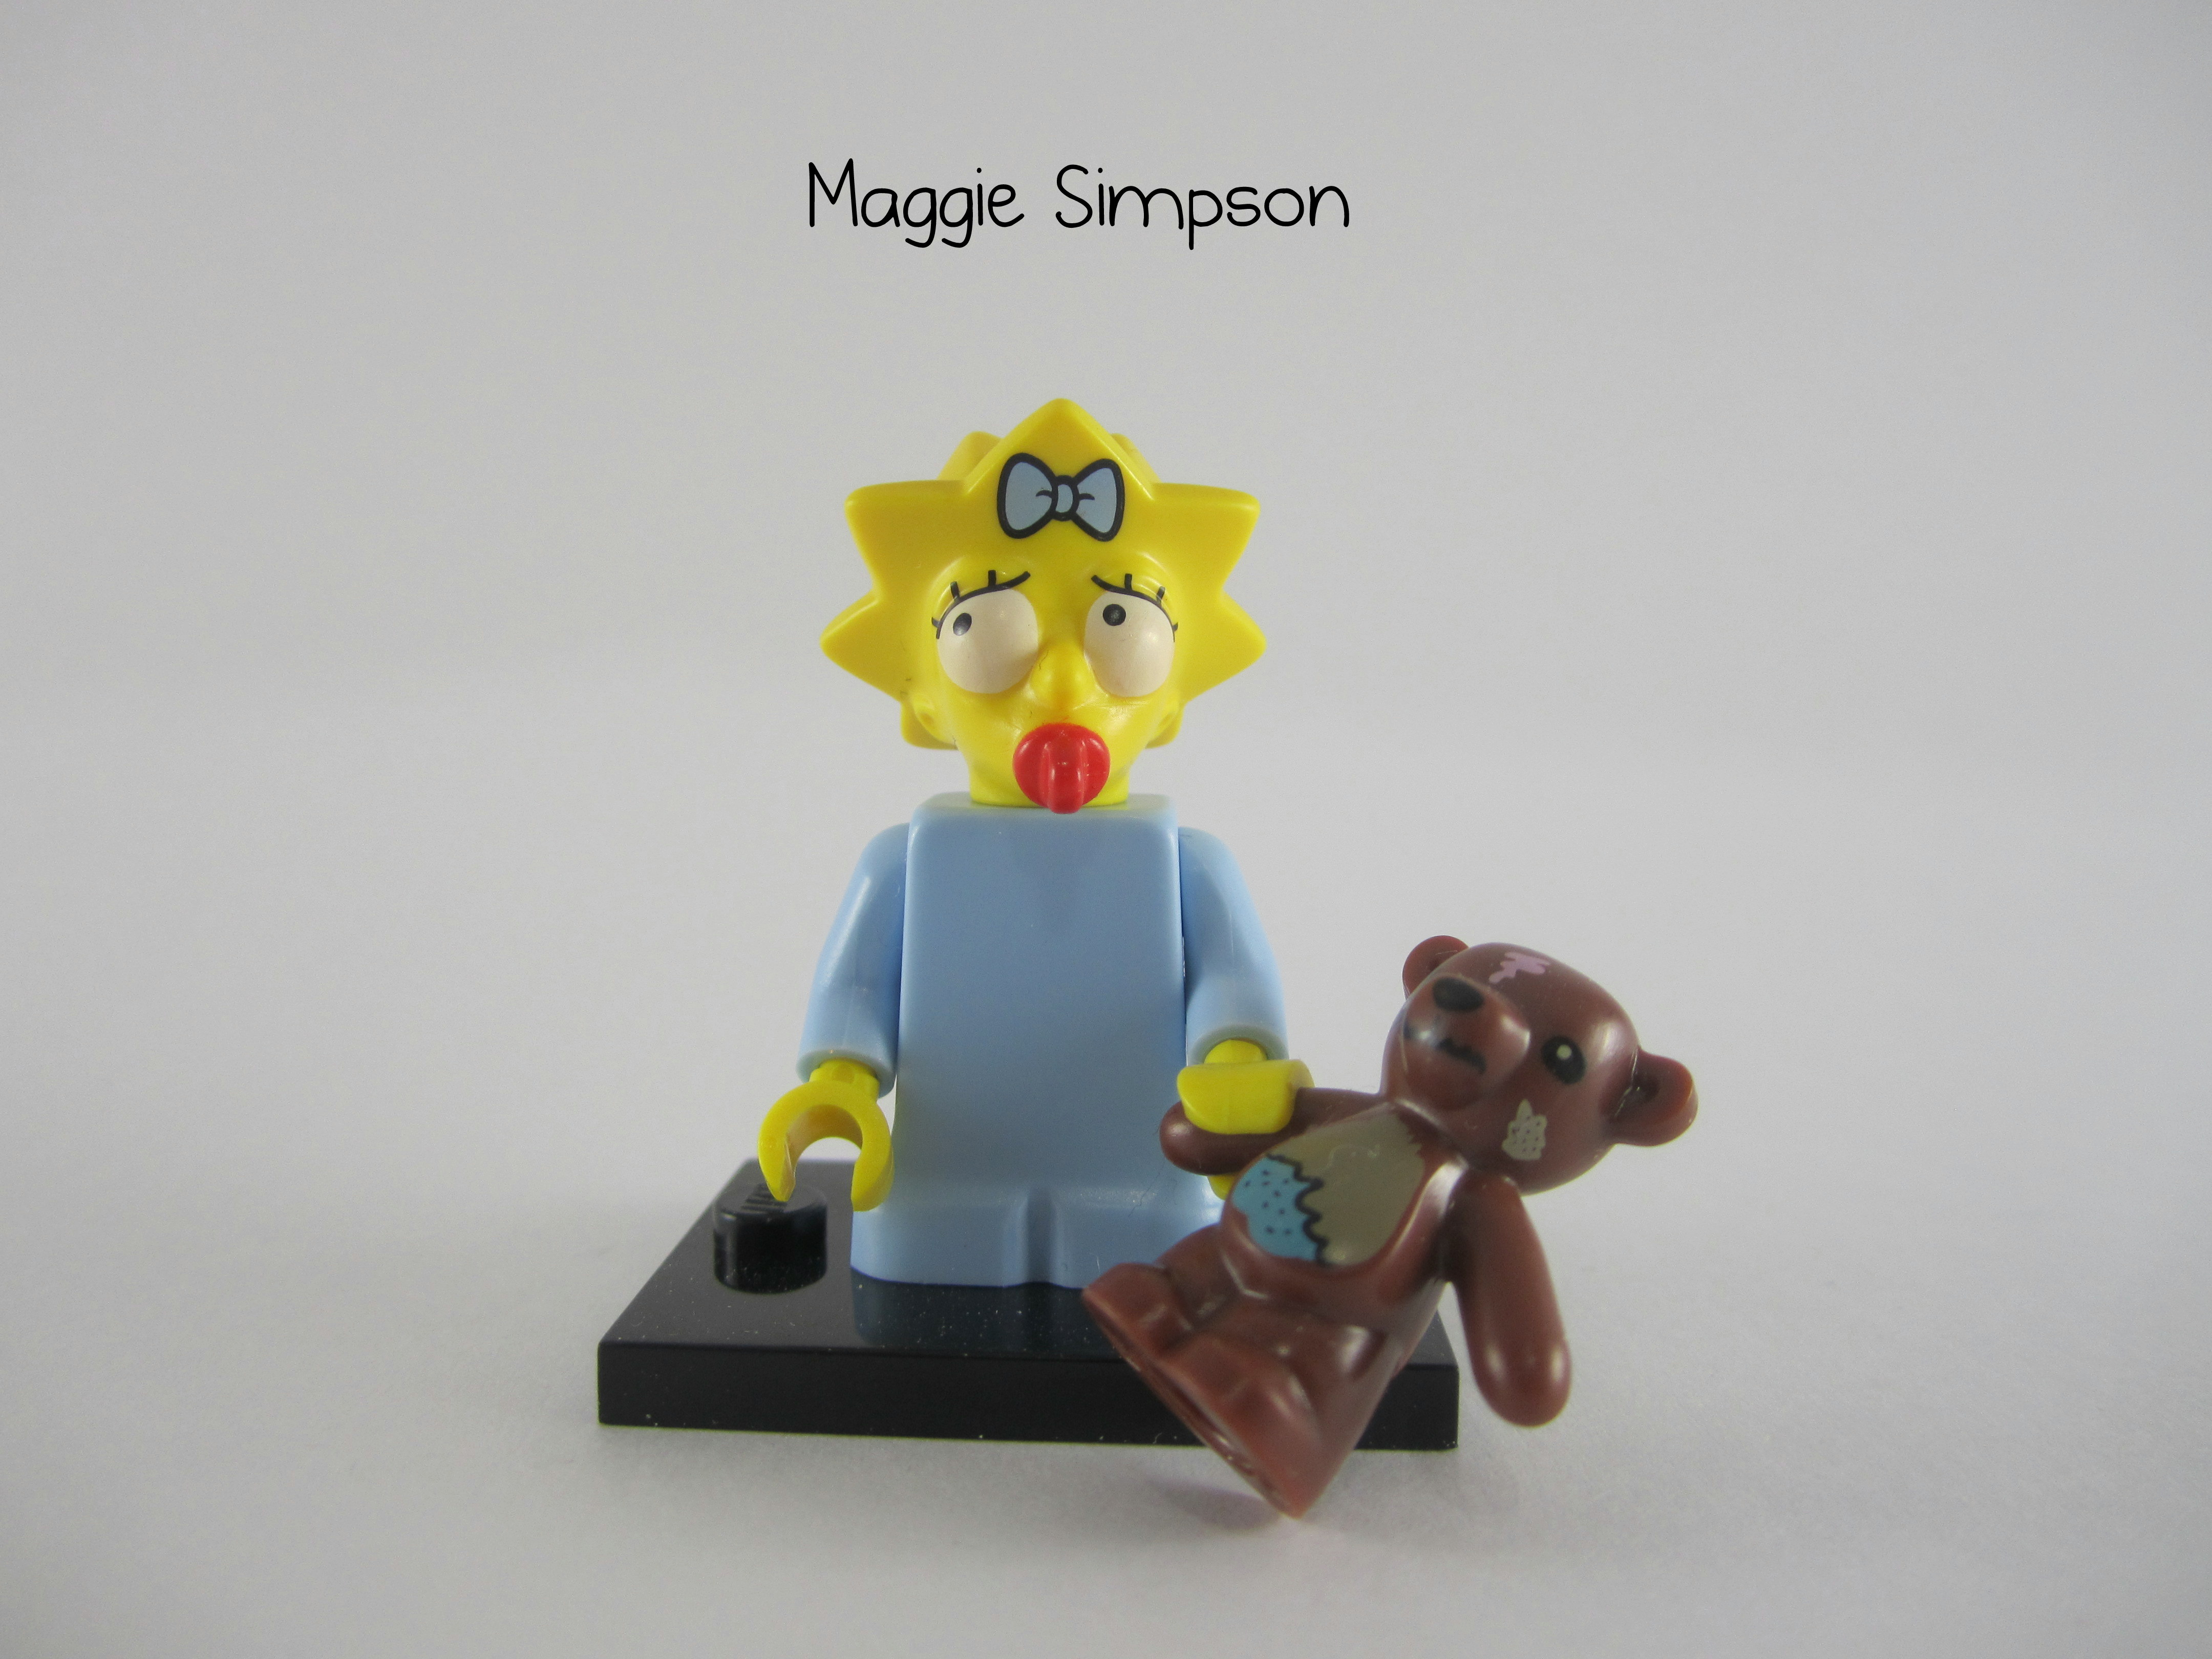 PARTS LEGO MINIFIGURES SERIES 2 THE SIMPSONS X 1 PINK SKIRT FOR LISA SIMPSON